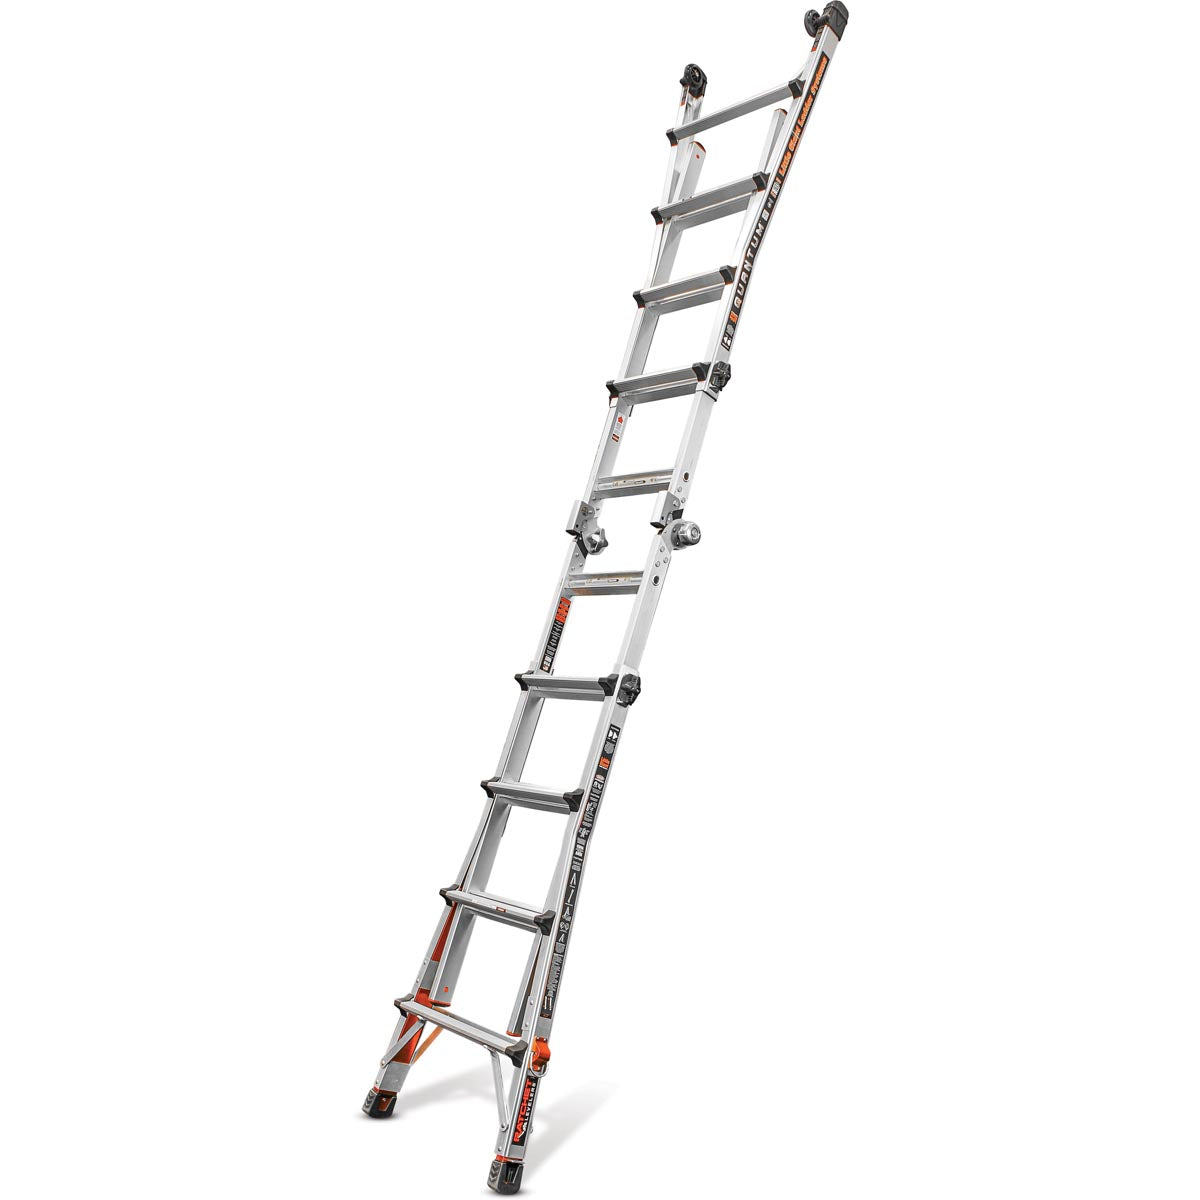 Little Giant Quantum Ladder Type 1a Quantum Ladders